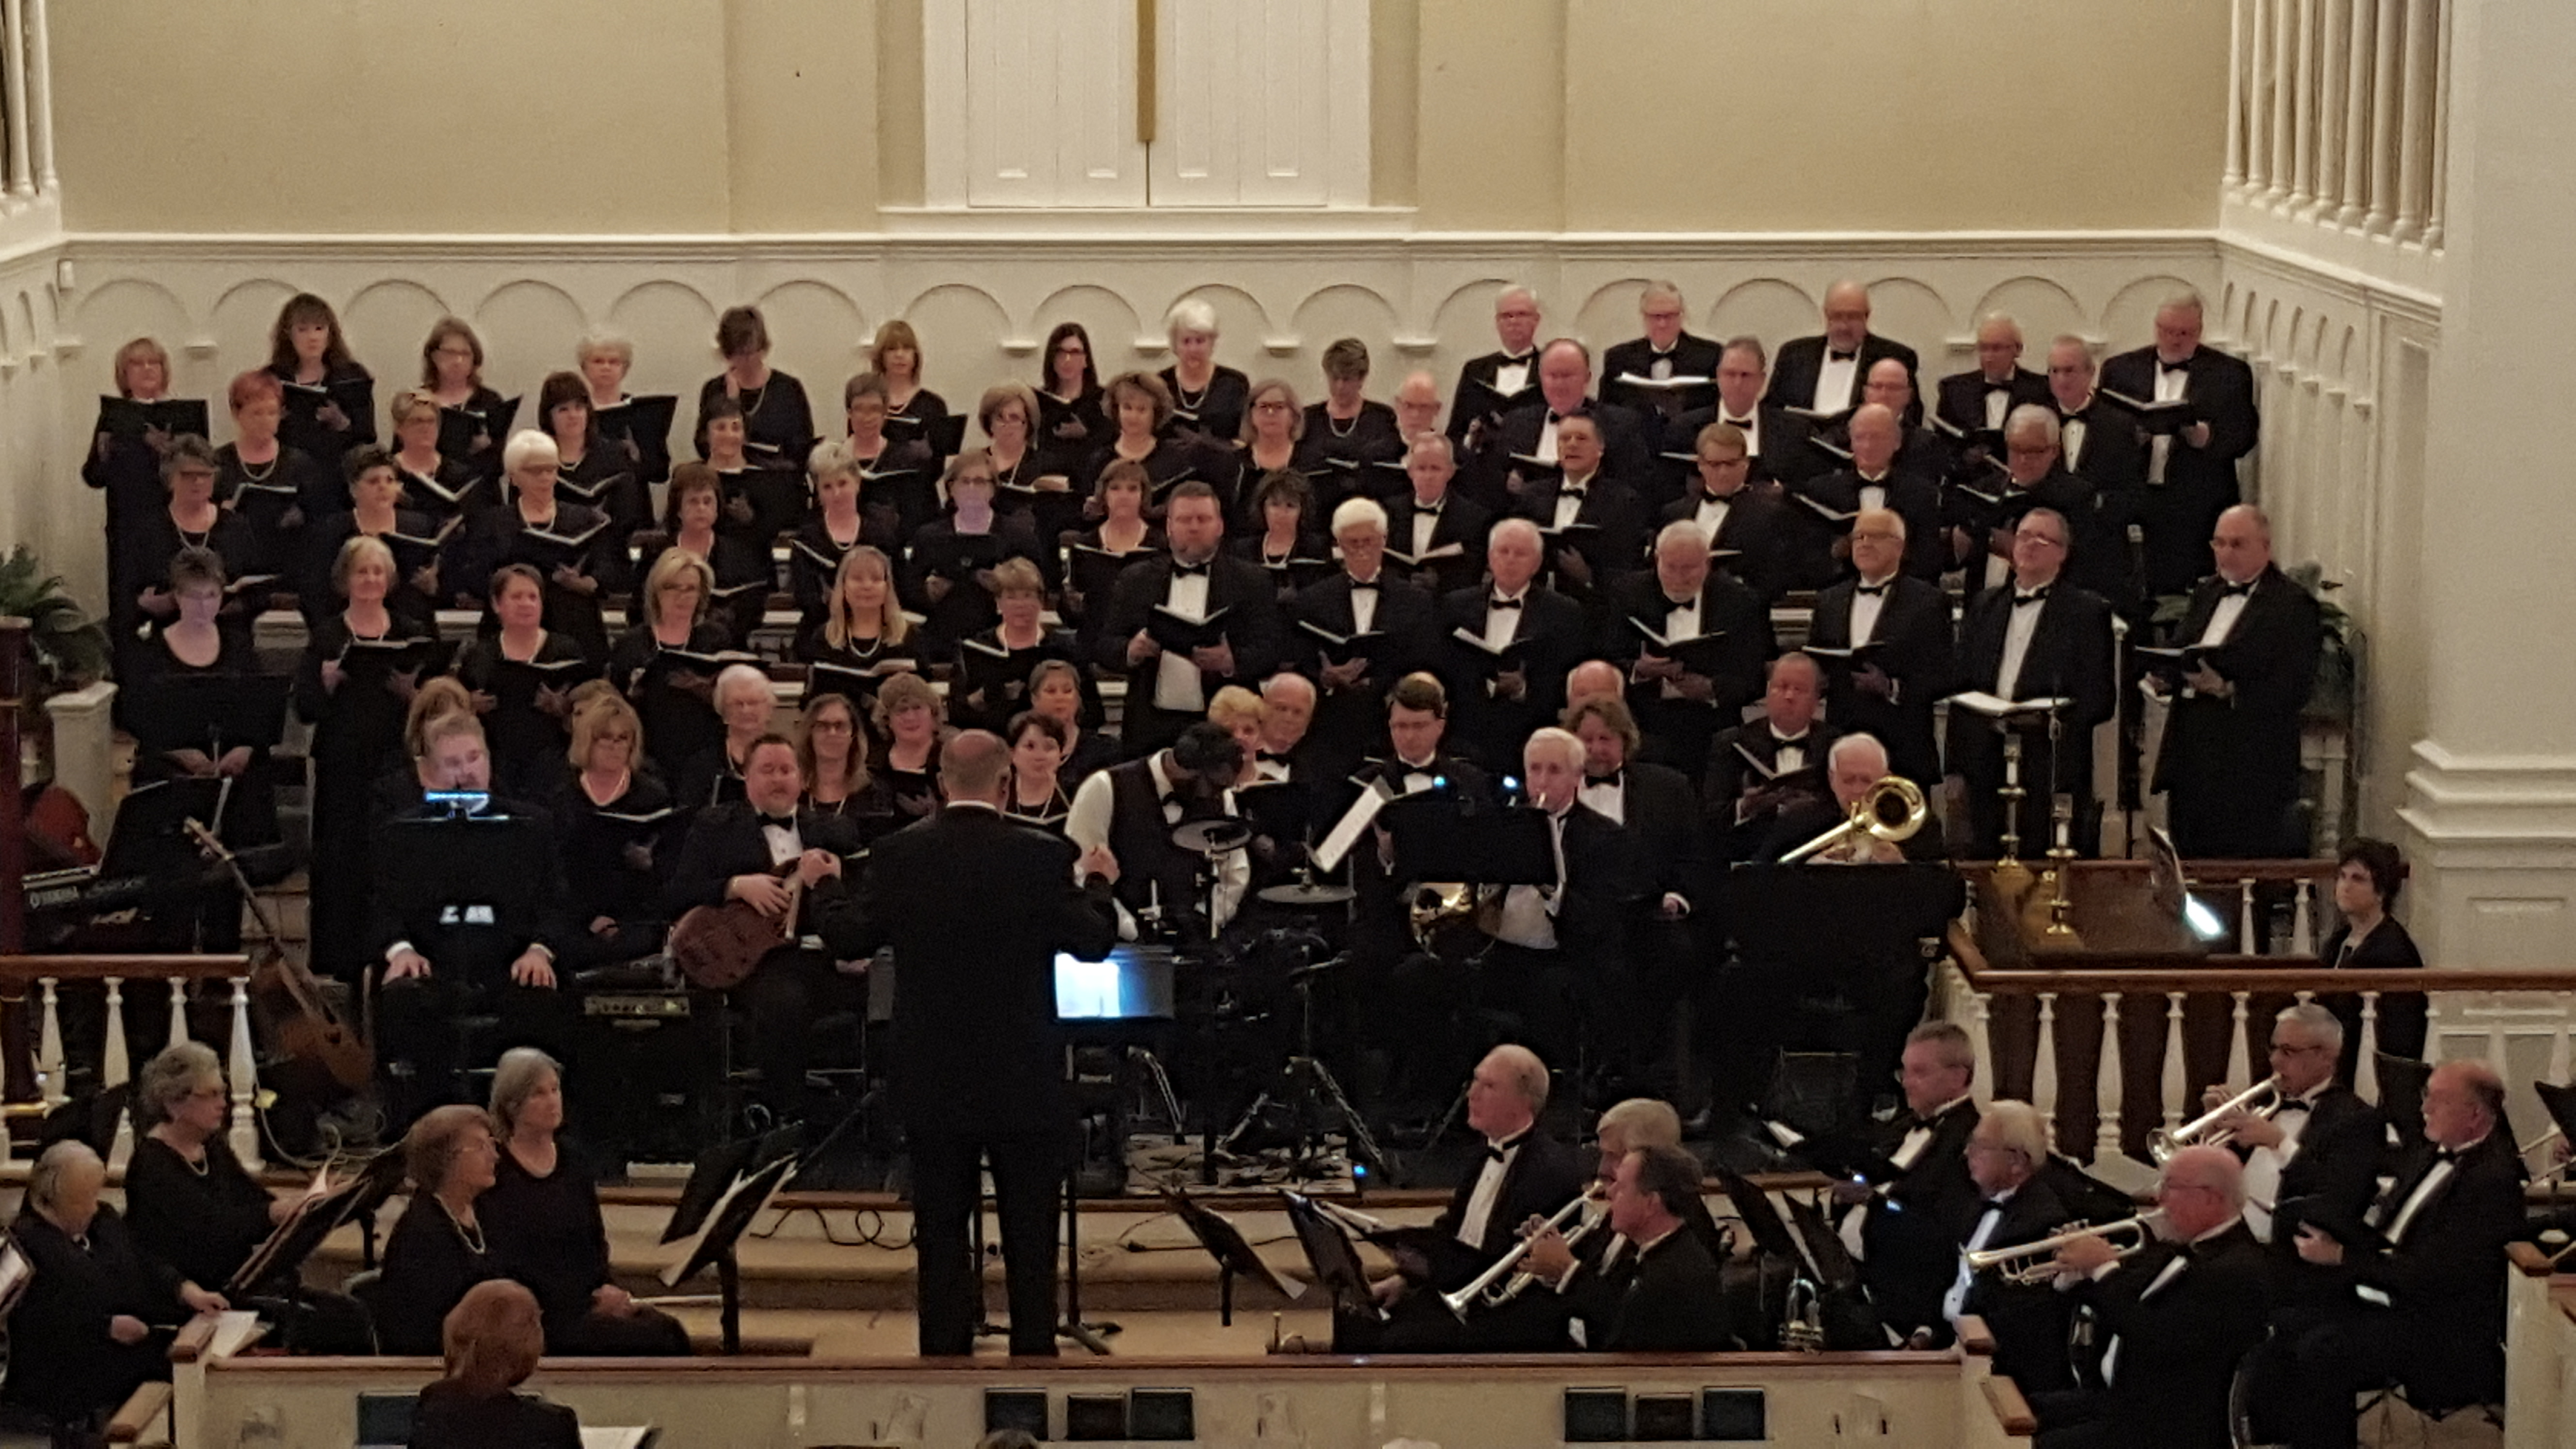 NC Baptist Singers and Orchestra perform in Bladen County